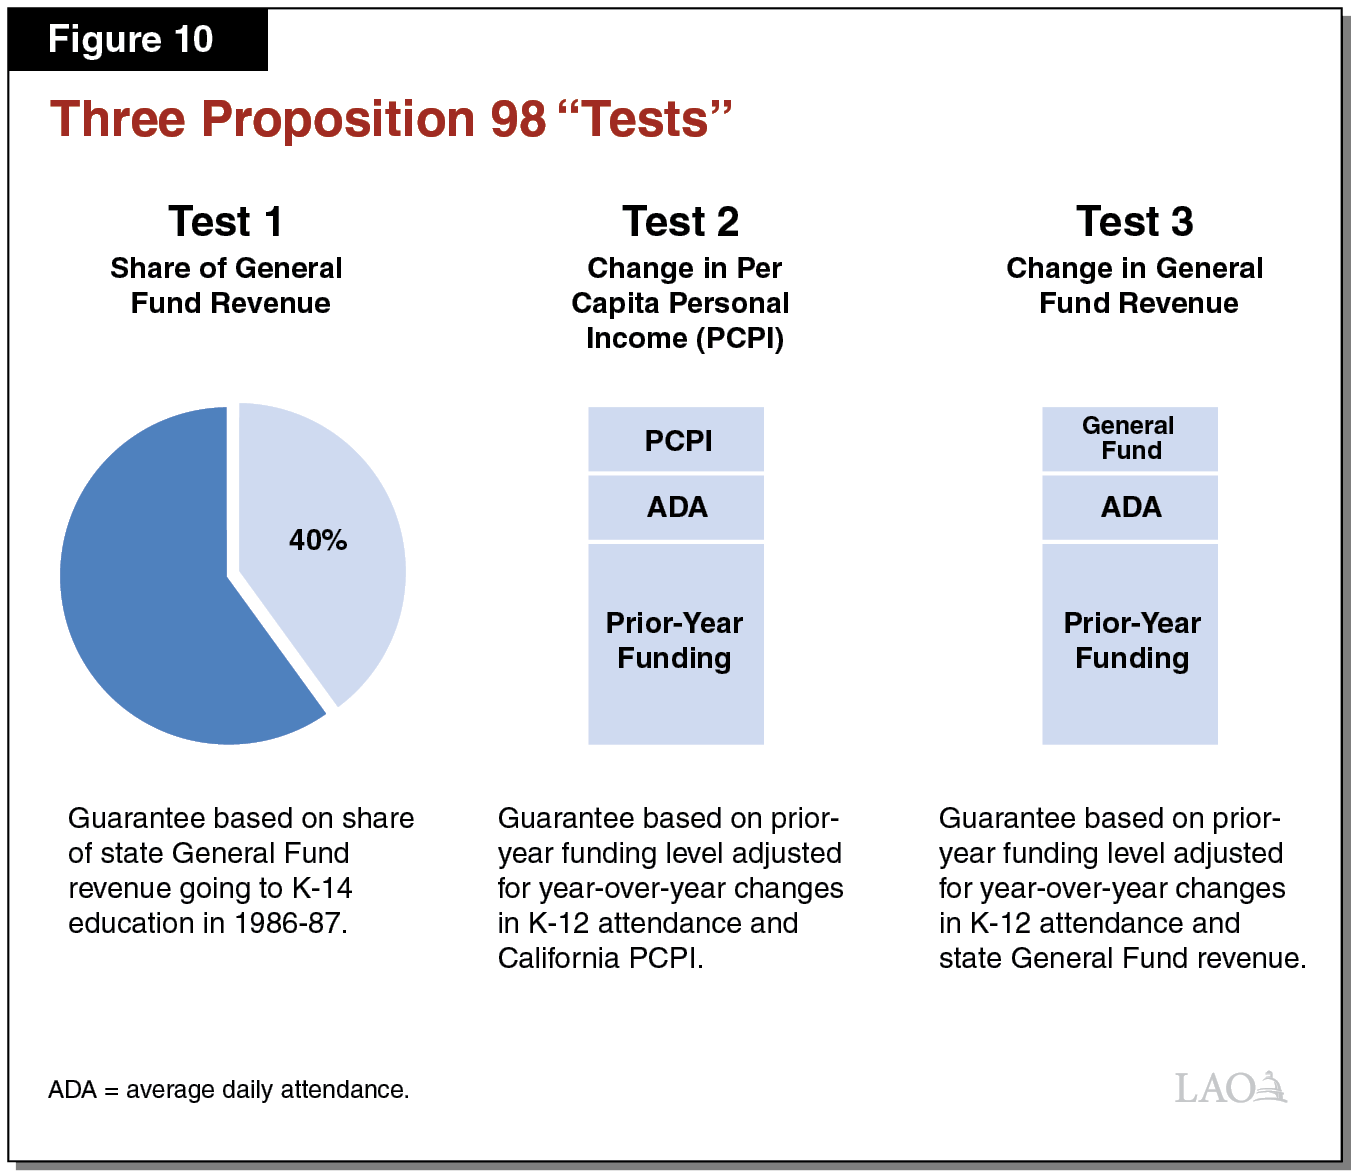 Figure 10 - Three Proposition 98 Tests